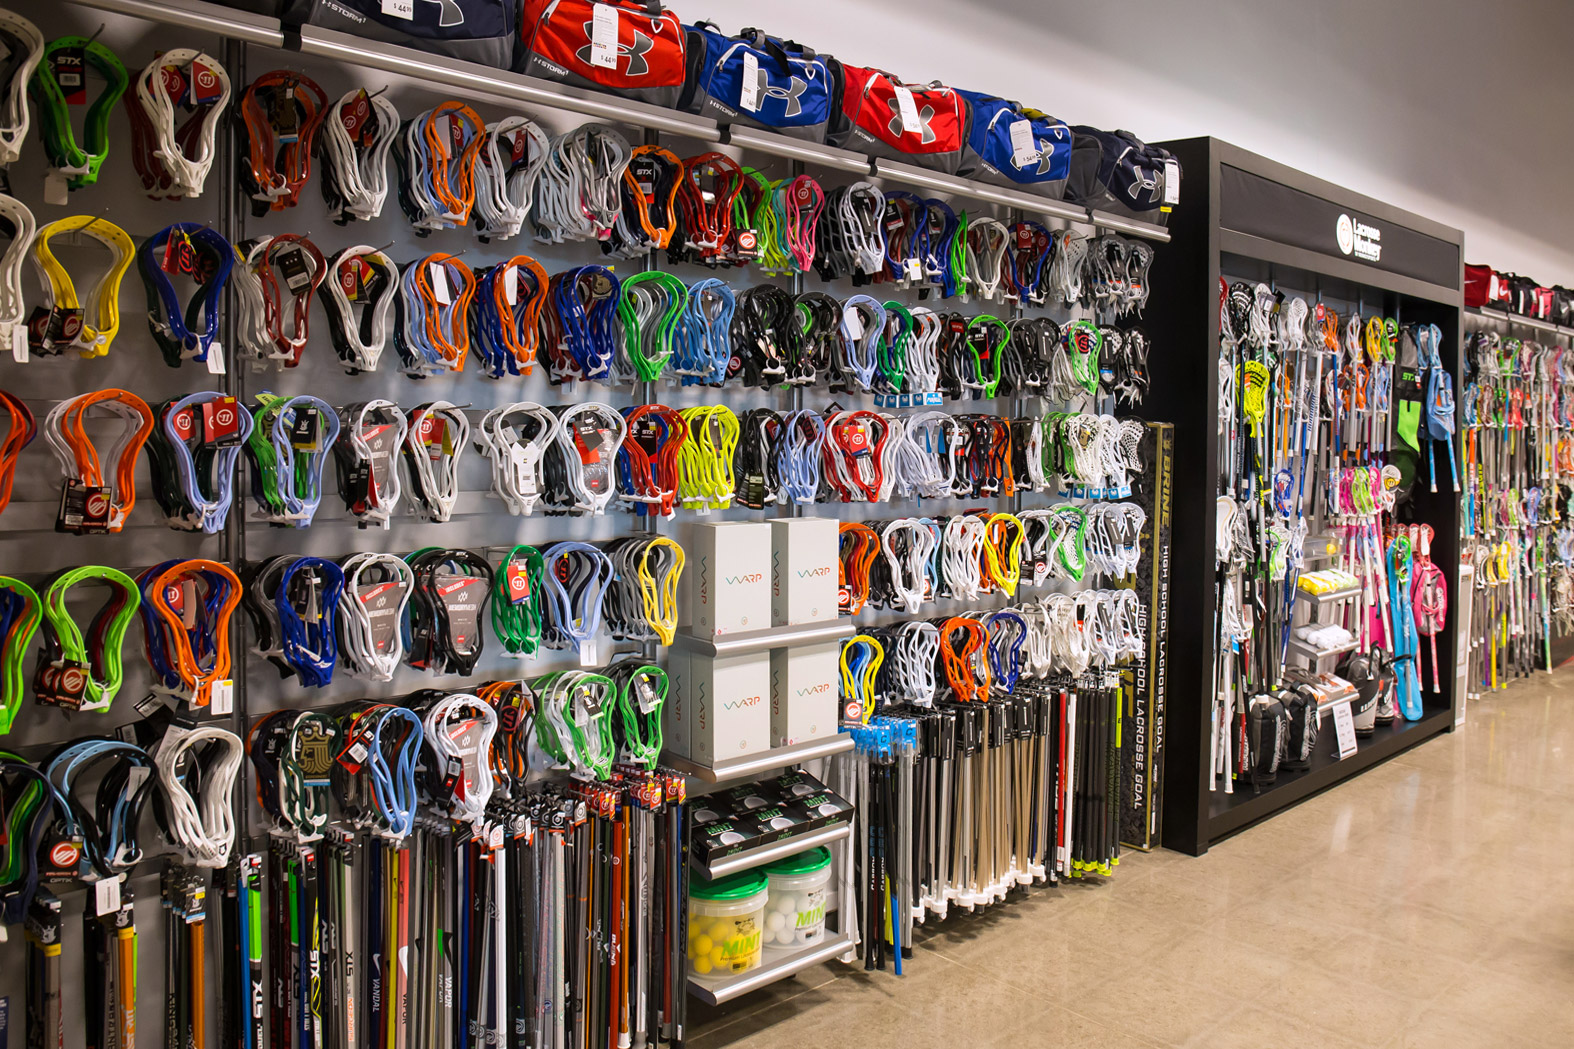 Lacrosse. Lacrosse is one of the fastest growing sports in California and Monkey Sports-Northridge is ready to grow with it. Our Northridge location is packed with a large selection of sticks, heads, protective gear, and everything else you will need to dominate on the field.